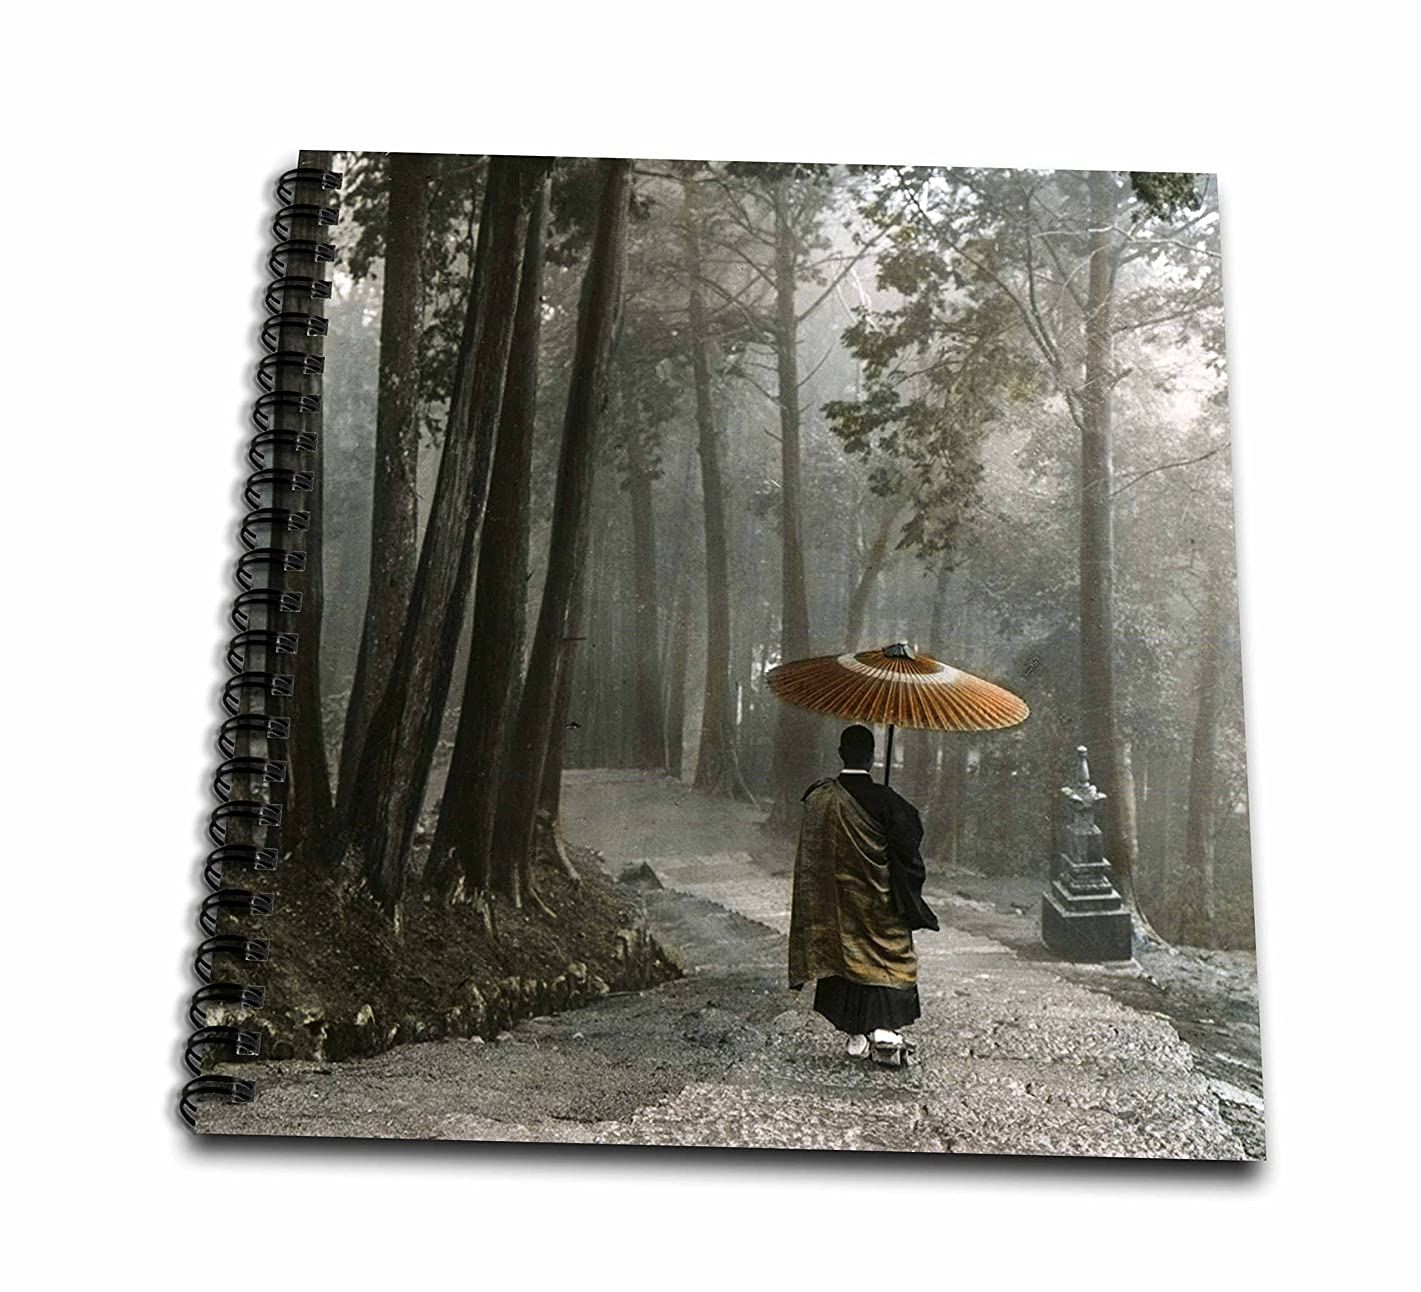 3D Rose Japanese Zen Buddhist Monk Walking Down Steps in a Light Rain Drawing Book